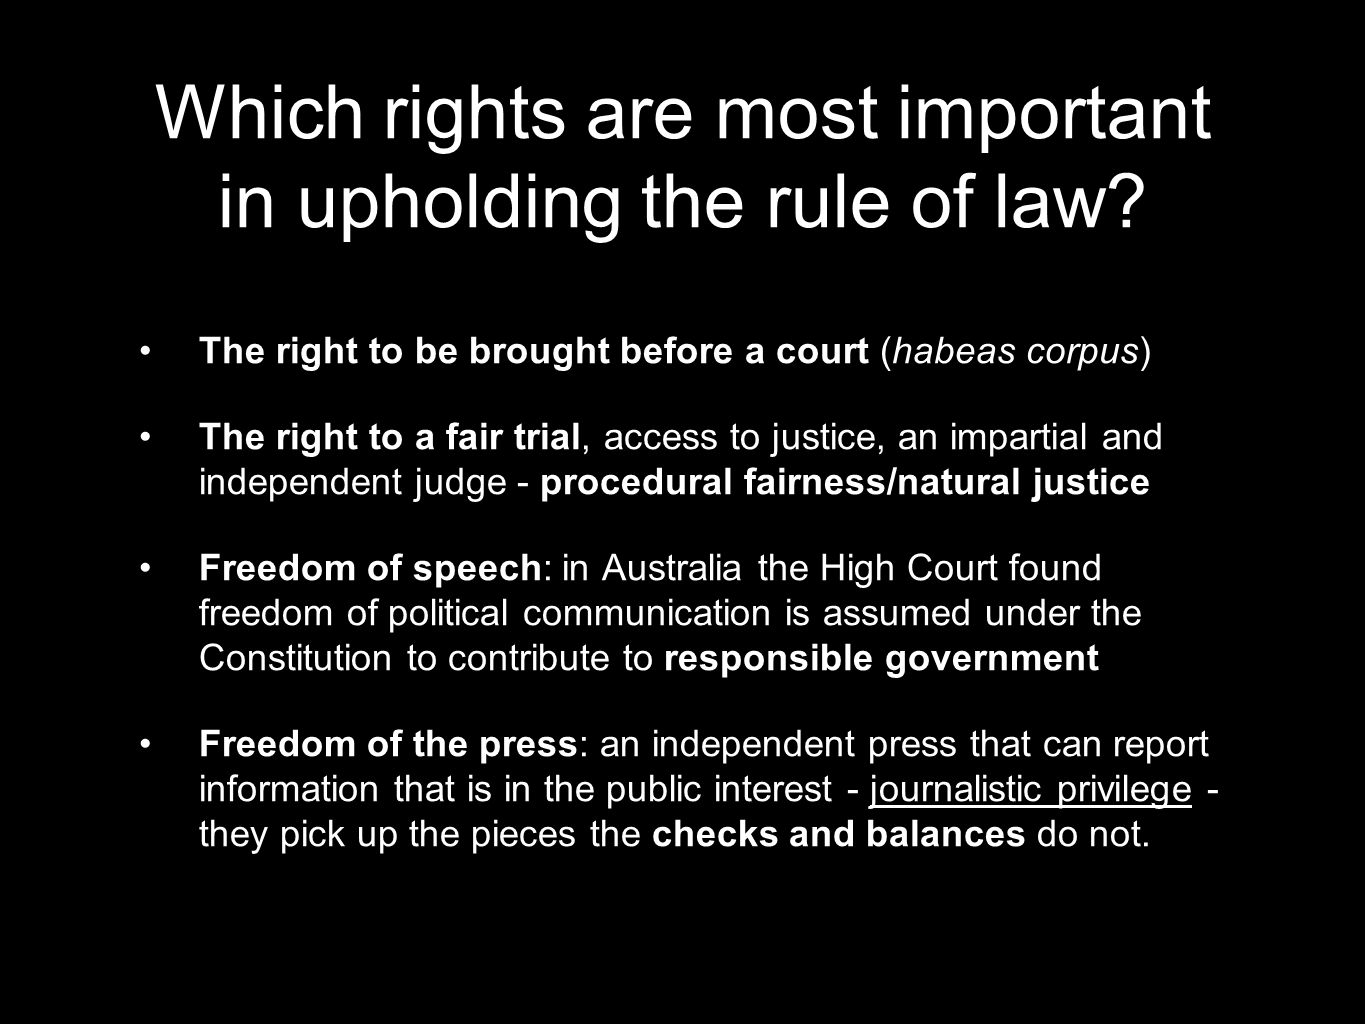 Which rights are most important in upholding the rule of law